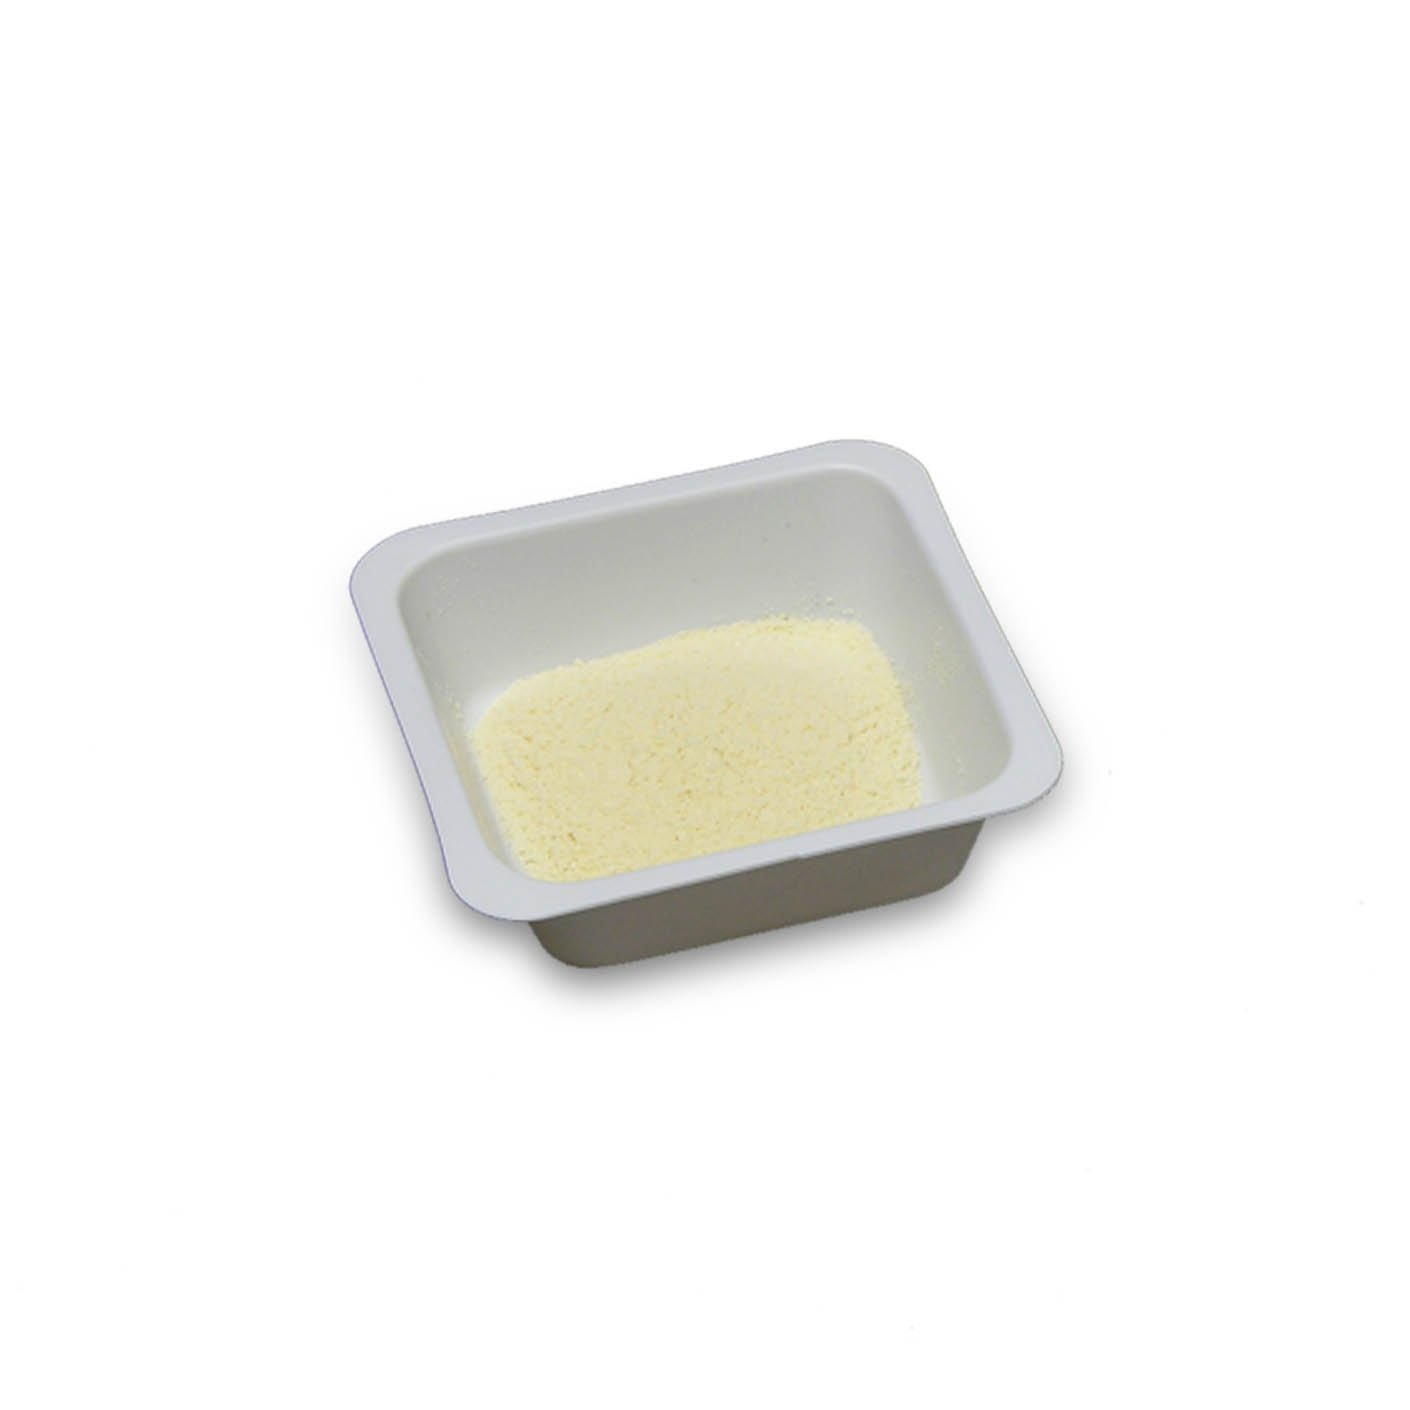 100mL White Antistatic Polystyrene Square Weigh Boat (500/Pack)